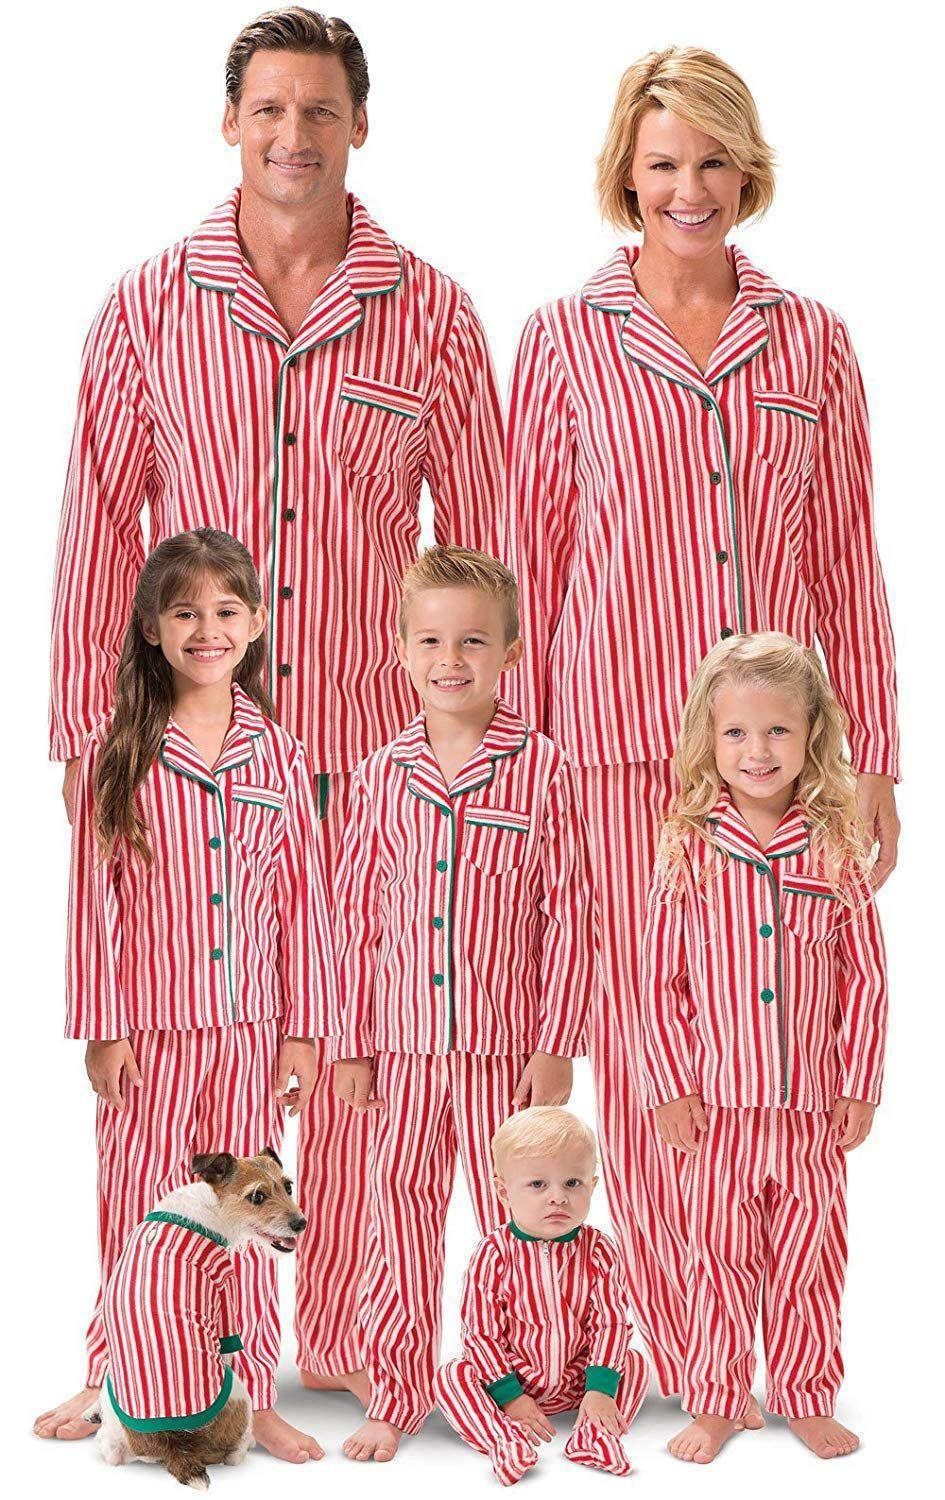 """<p><strong>PajamaGram</strong></p><p>amazon.com</p><p><strong>$74.99</strong></p><p><a href=""""http://www.amazon.com/dp/B00QVOKC52/?tag=syn-yahoo-20&ascsubtag=%5Bartid%7C10050.g.4956%5Bsrc%7Cyahoo-us"""" rel=""""nofollow noopener"""" target=""""_blank"""" data-ylk=""""slk:Shop Now"""" class=""""link rapid-noclick-resp"""">Shop Now</a></p><p>These matching jammies are as sweet as candy (canes).</p>"""